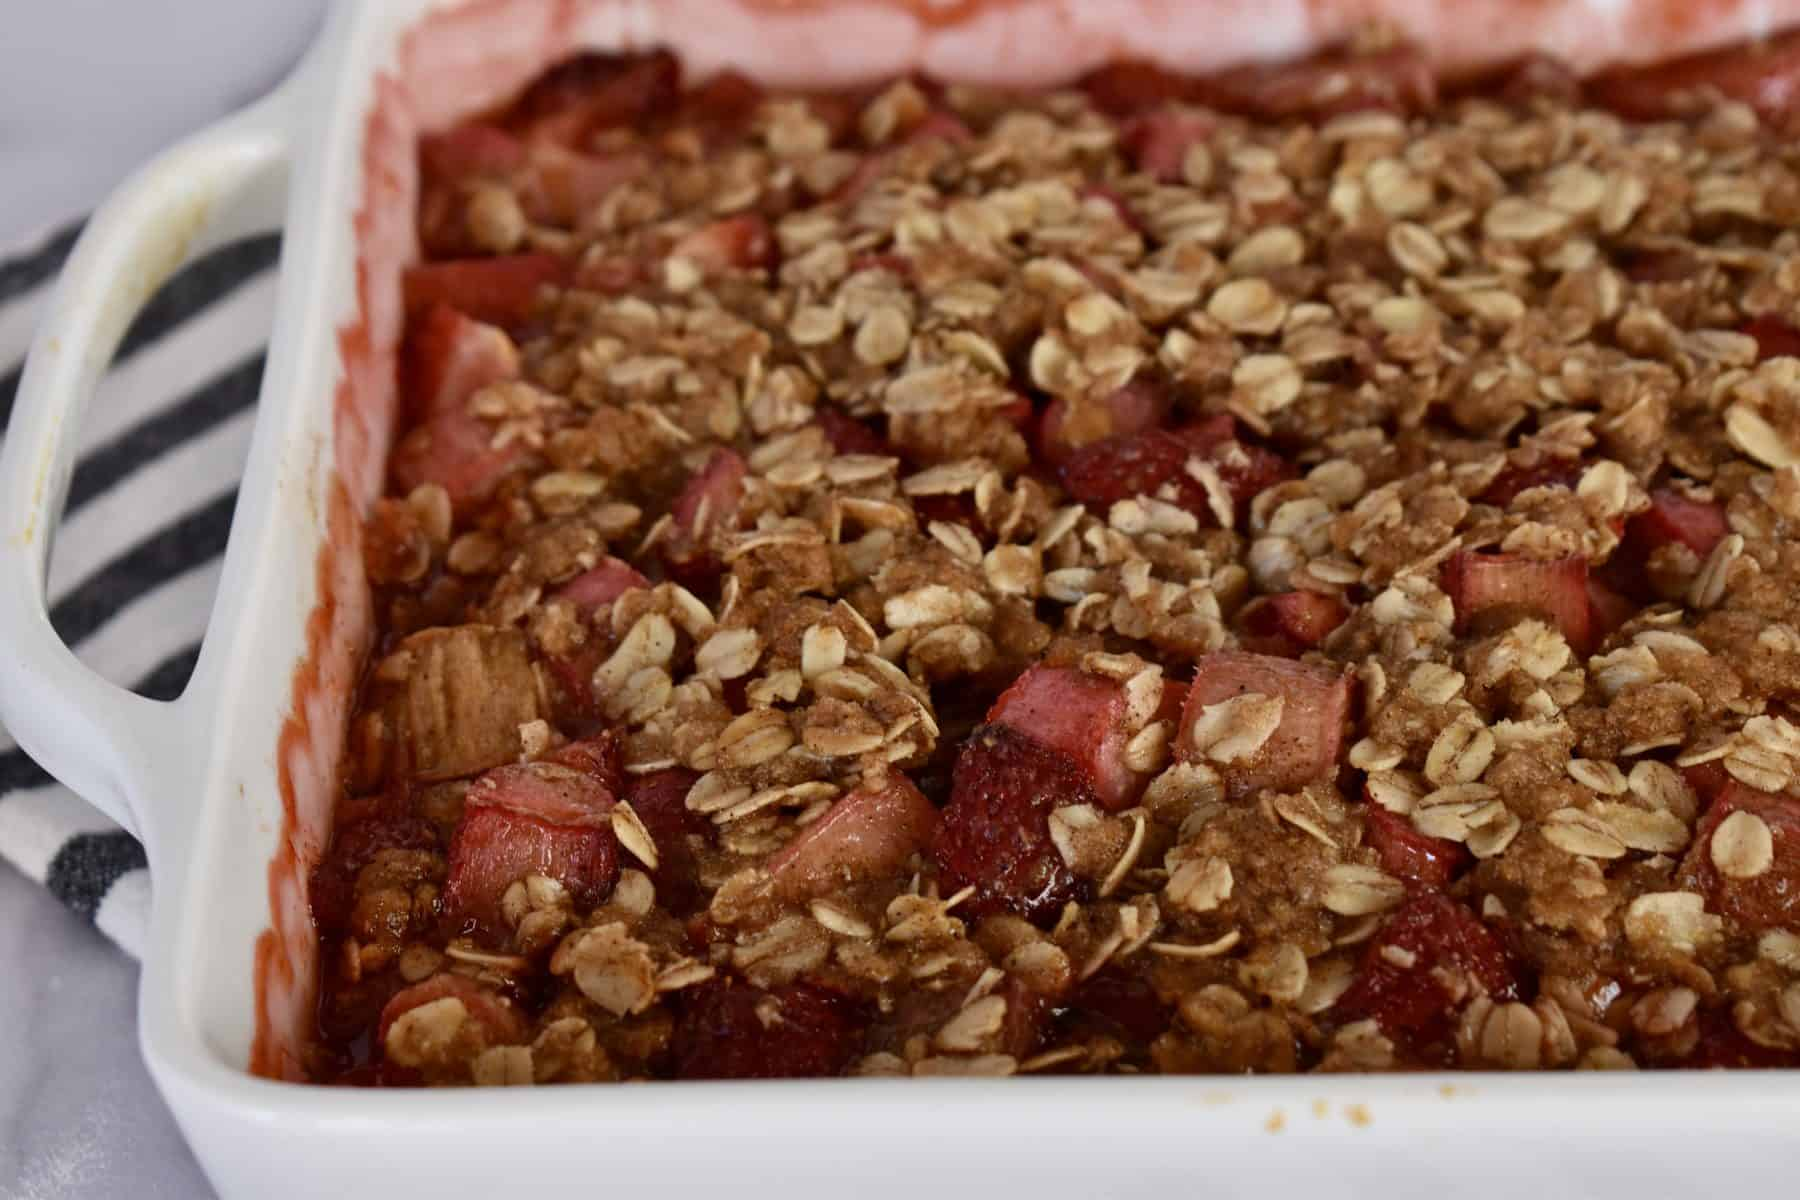 Strawberry Rhubarb Crisp that has been baked in a white baking dish.